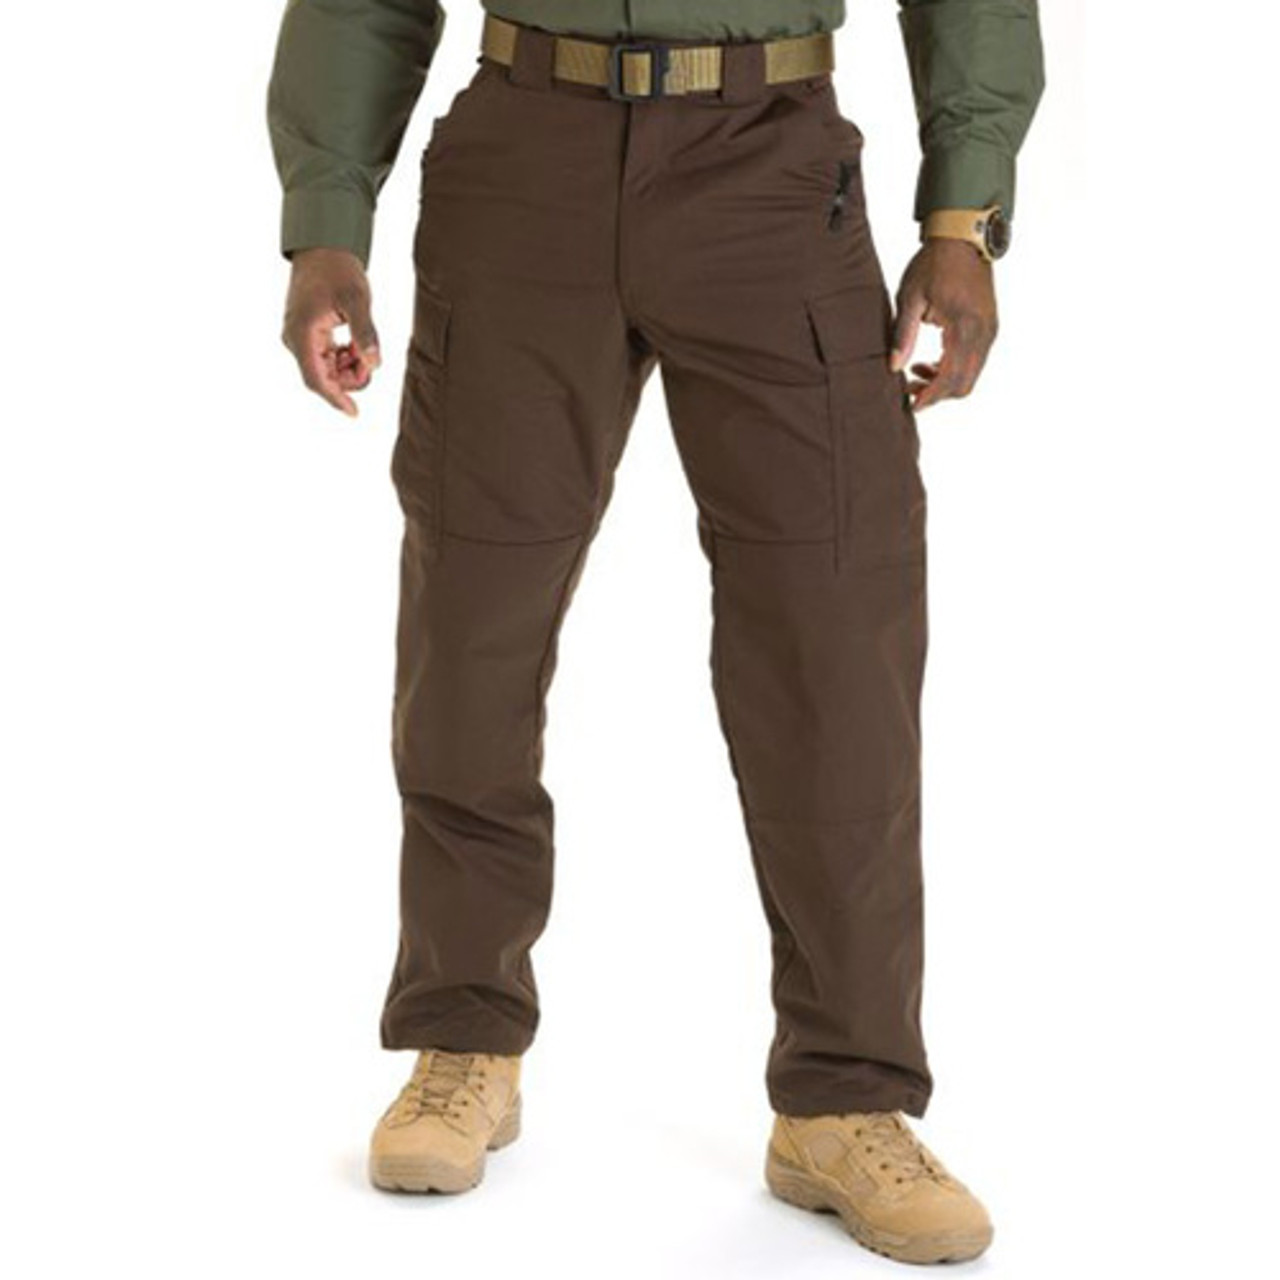 5.11 Tactical 74003 TDU®  Men's Pants, High-performance, Adjustable Waistband, Classic/Straight, Ammo Pockets, Uniform/Cargo, Polyester/Cotton, Lightweight, available in Black, Brown, TDU Khaki, TDU Green, Dark Navy